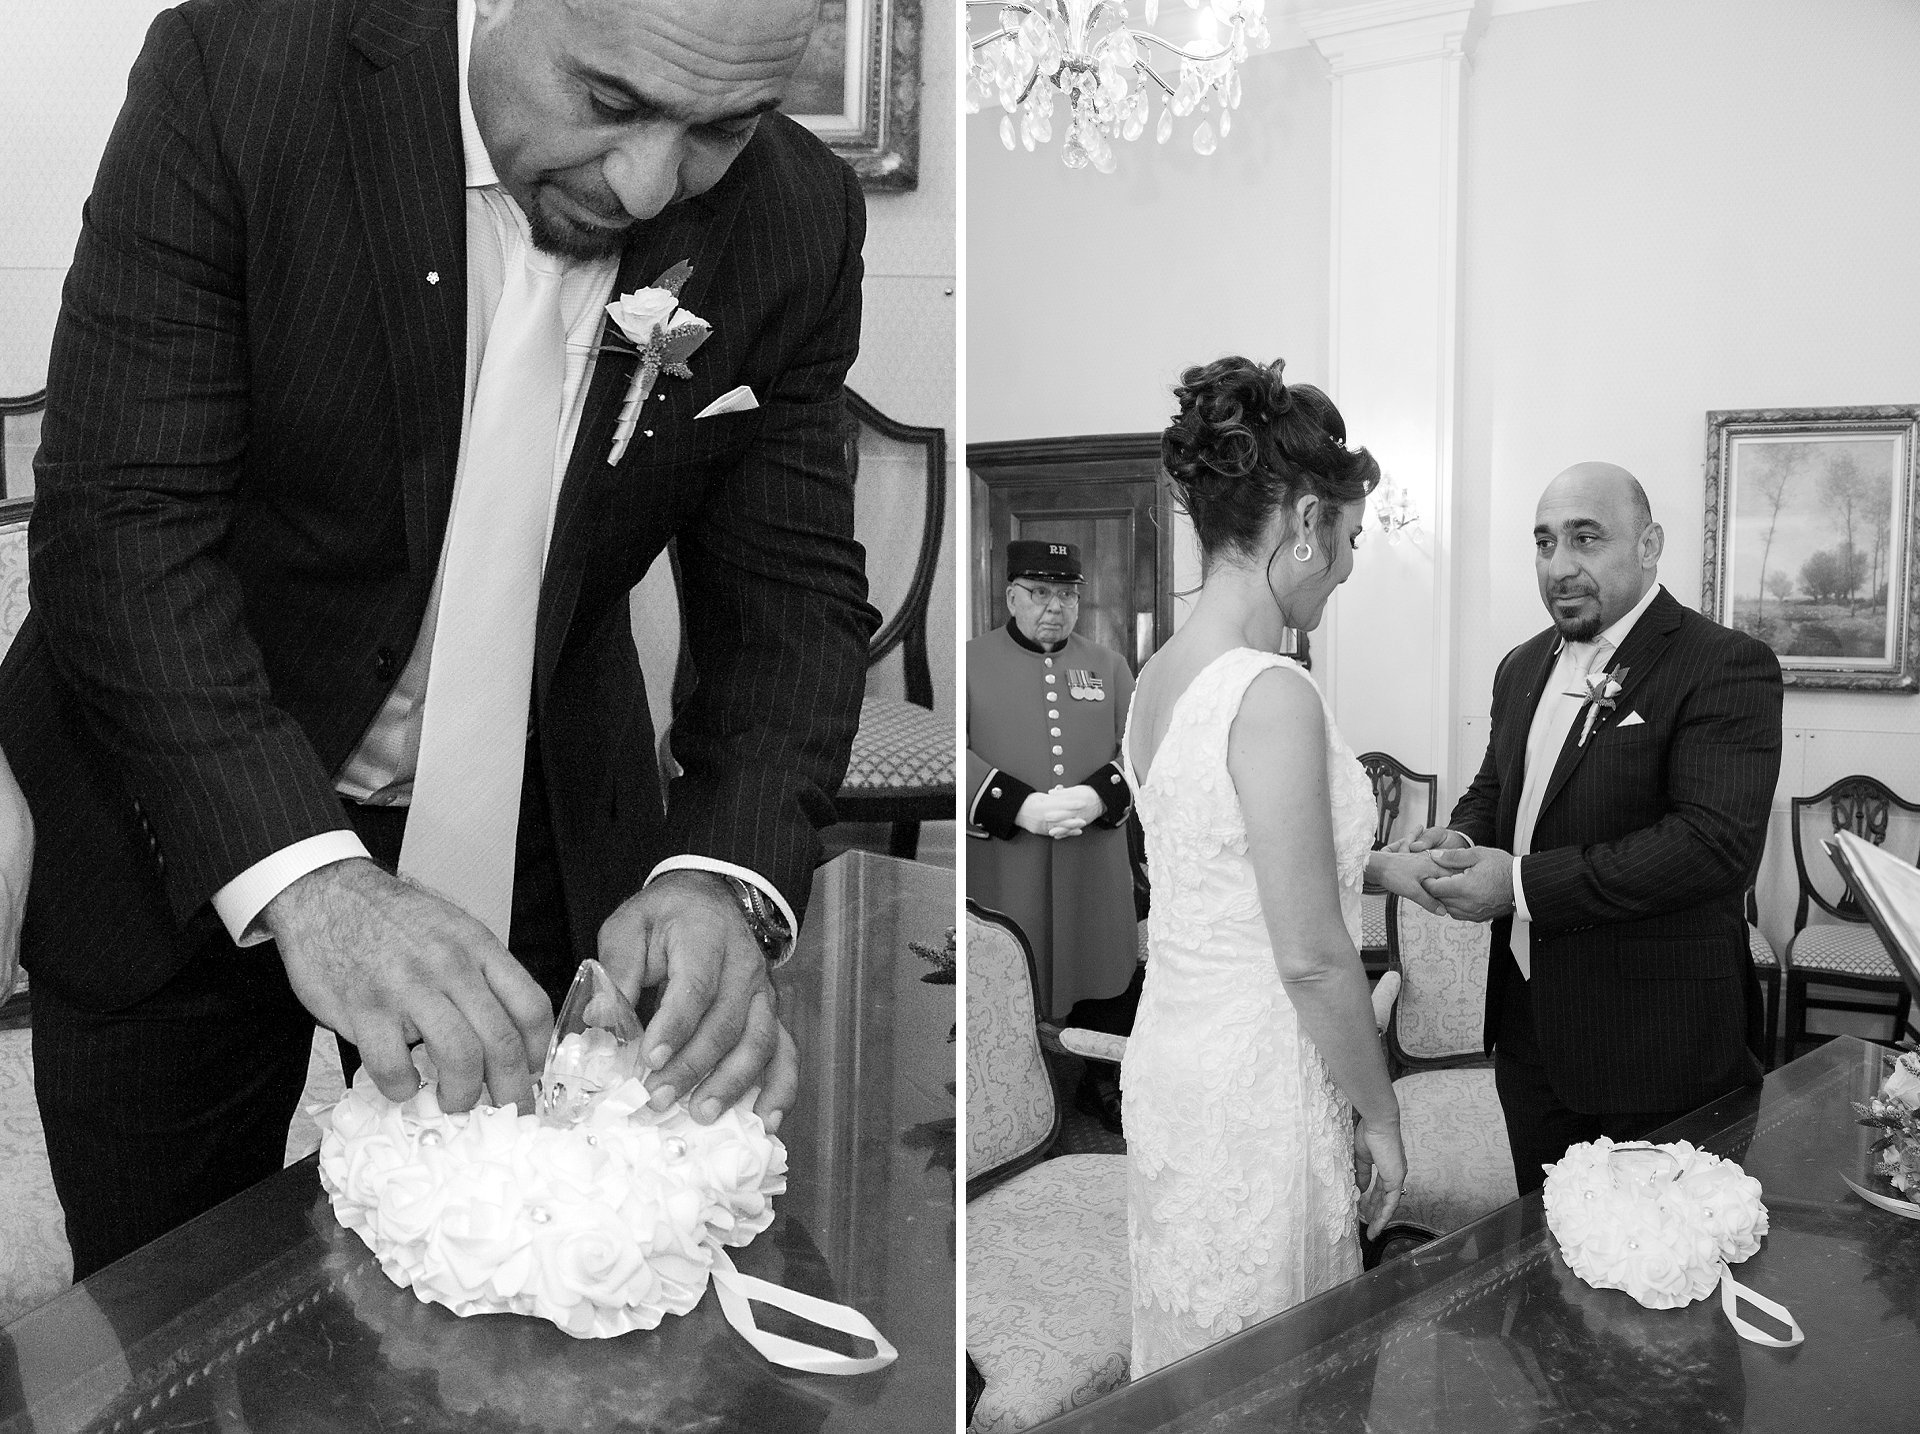 Exchange of rings during civil wedding ceremony at Chelsea Town Hall